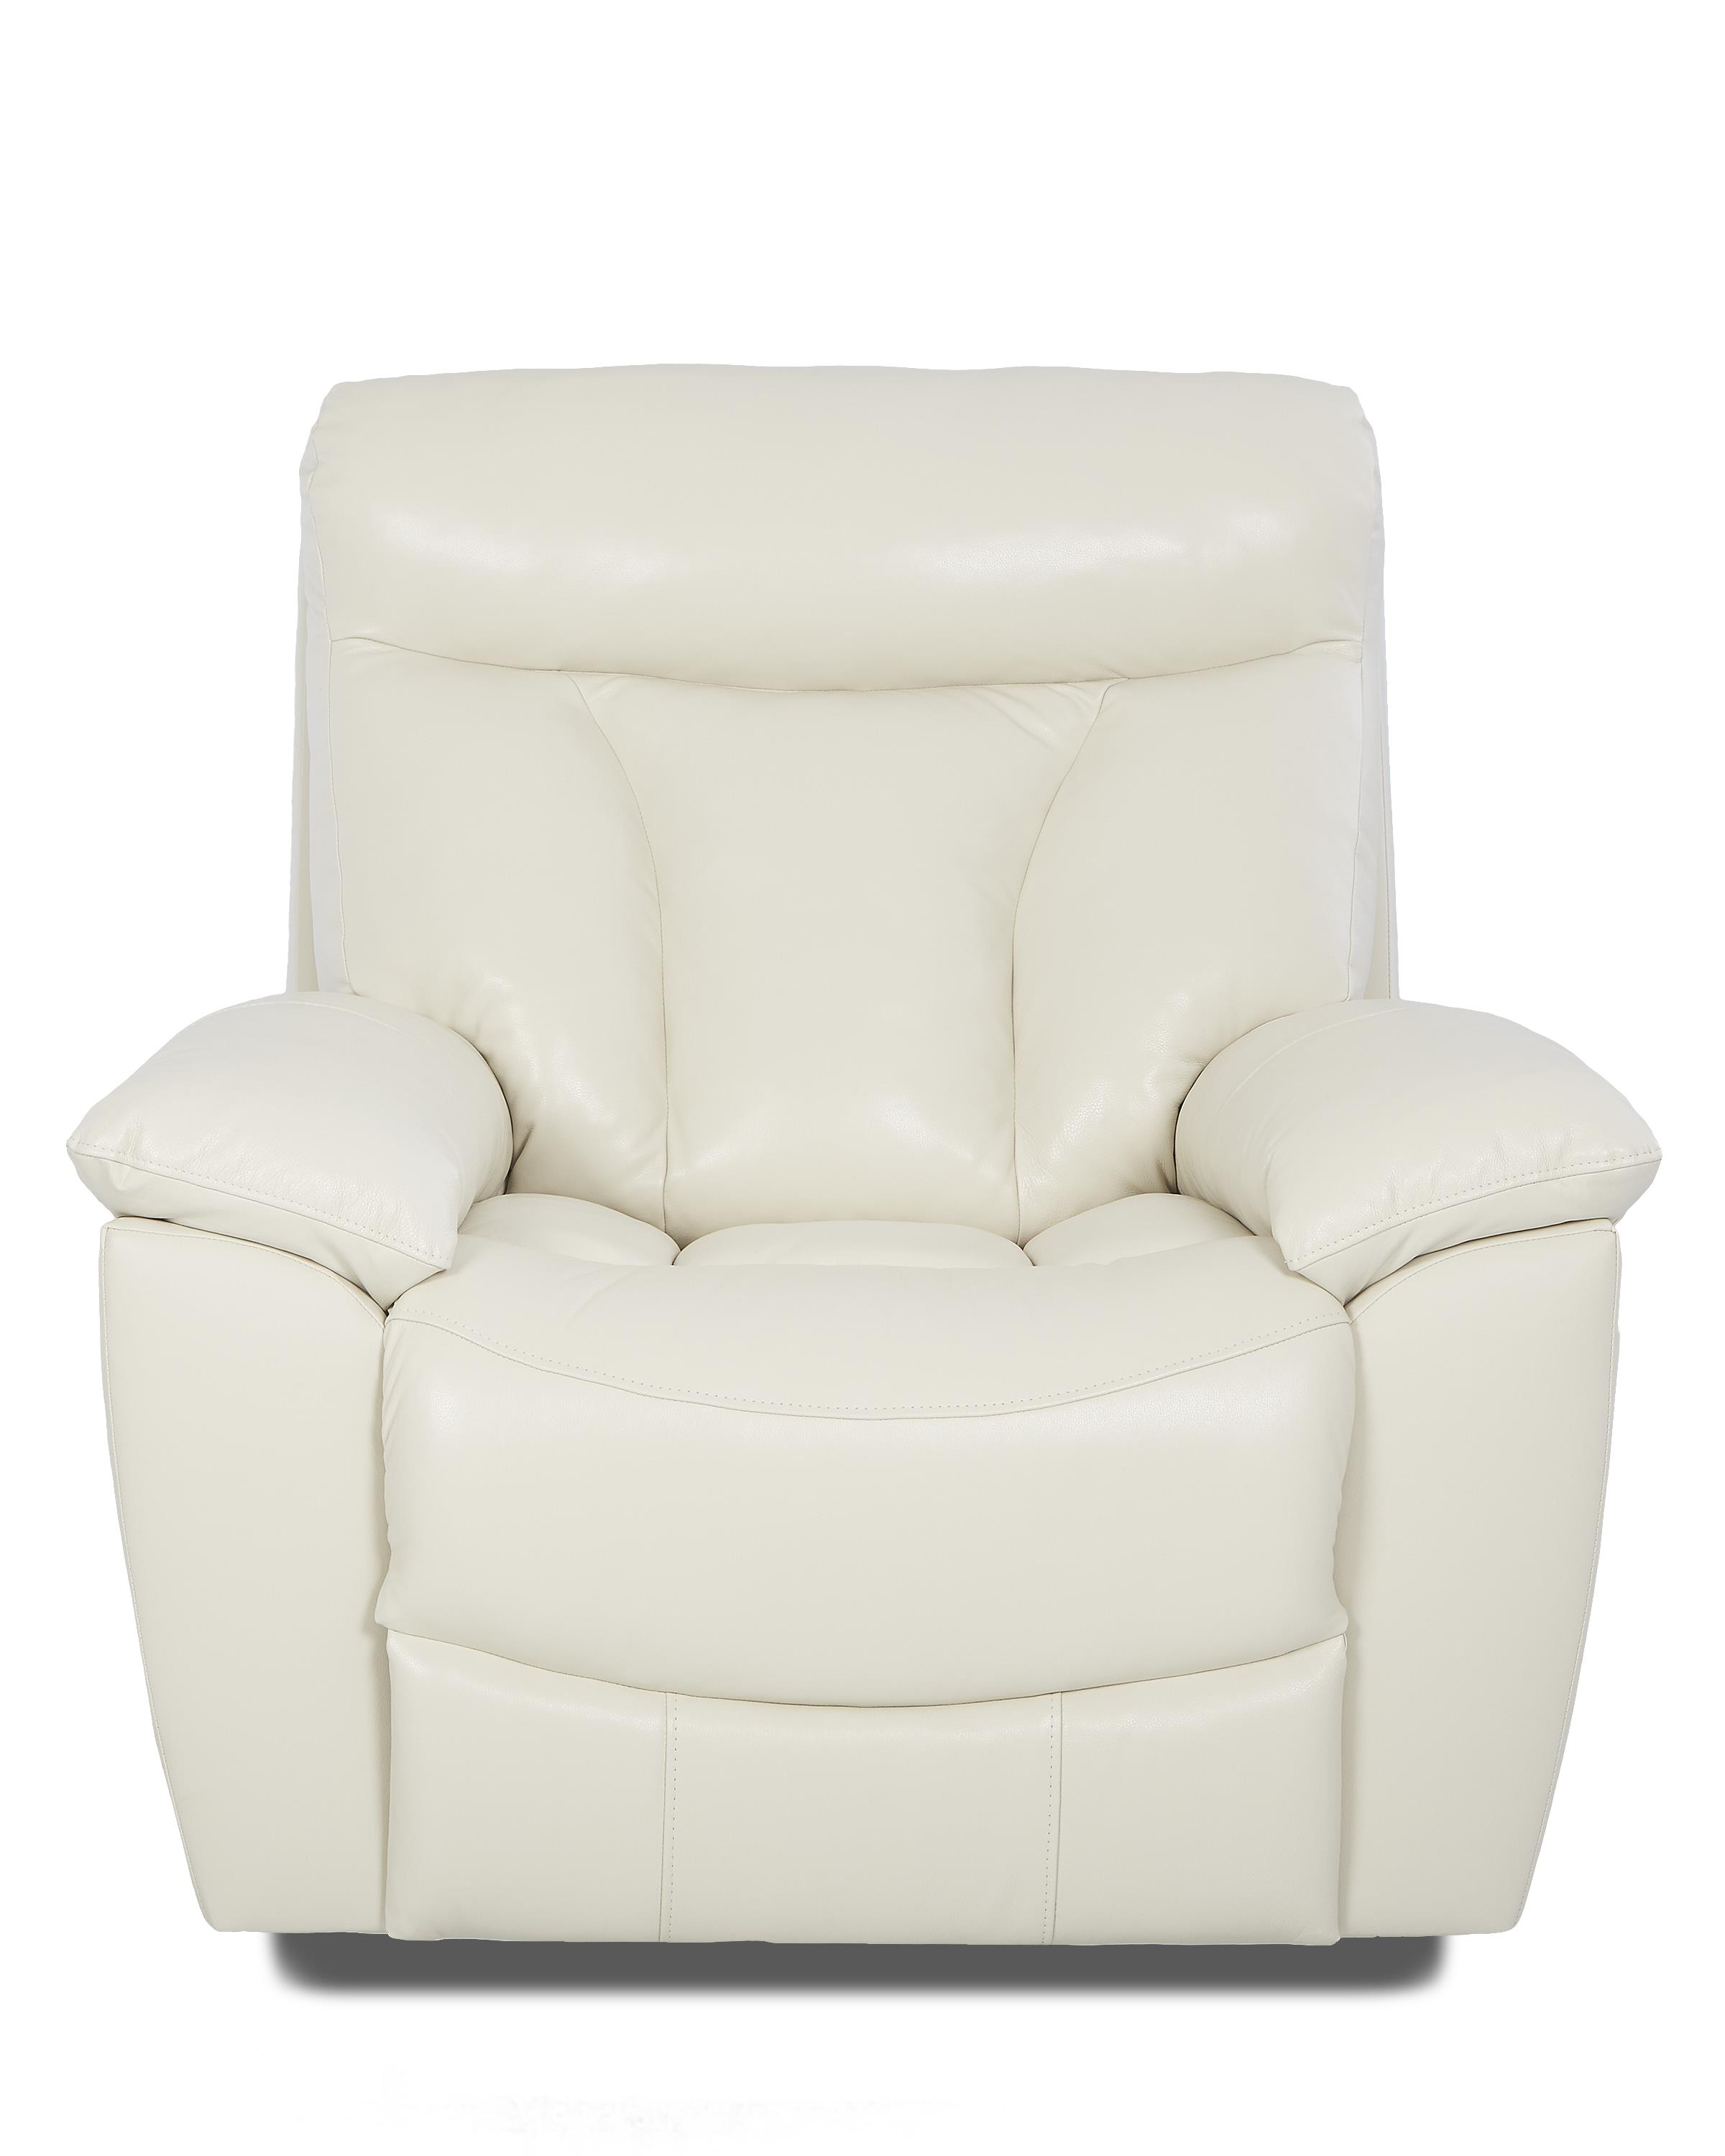 Klaussner Deluxe Reclining Chair - Item Number: LV63703 SRRC